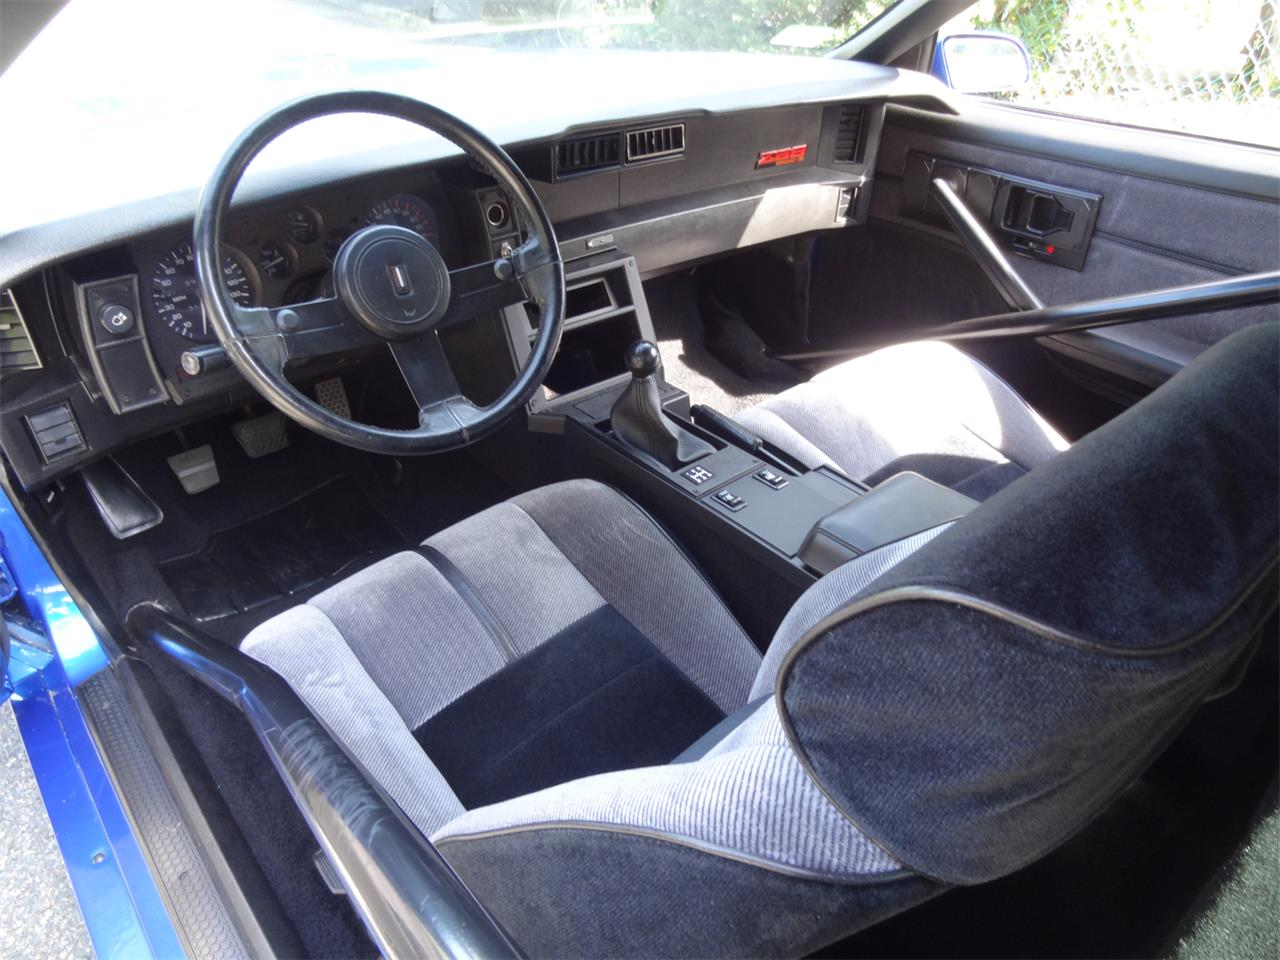 Large Picture of '83 Chevrolet Camaro IROC Z28 located in Hingham Massachusetts Offered by a Private Seller - QUEA